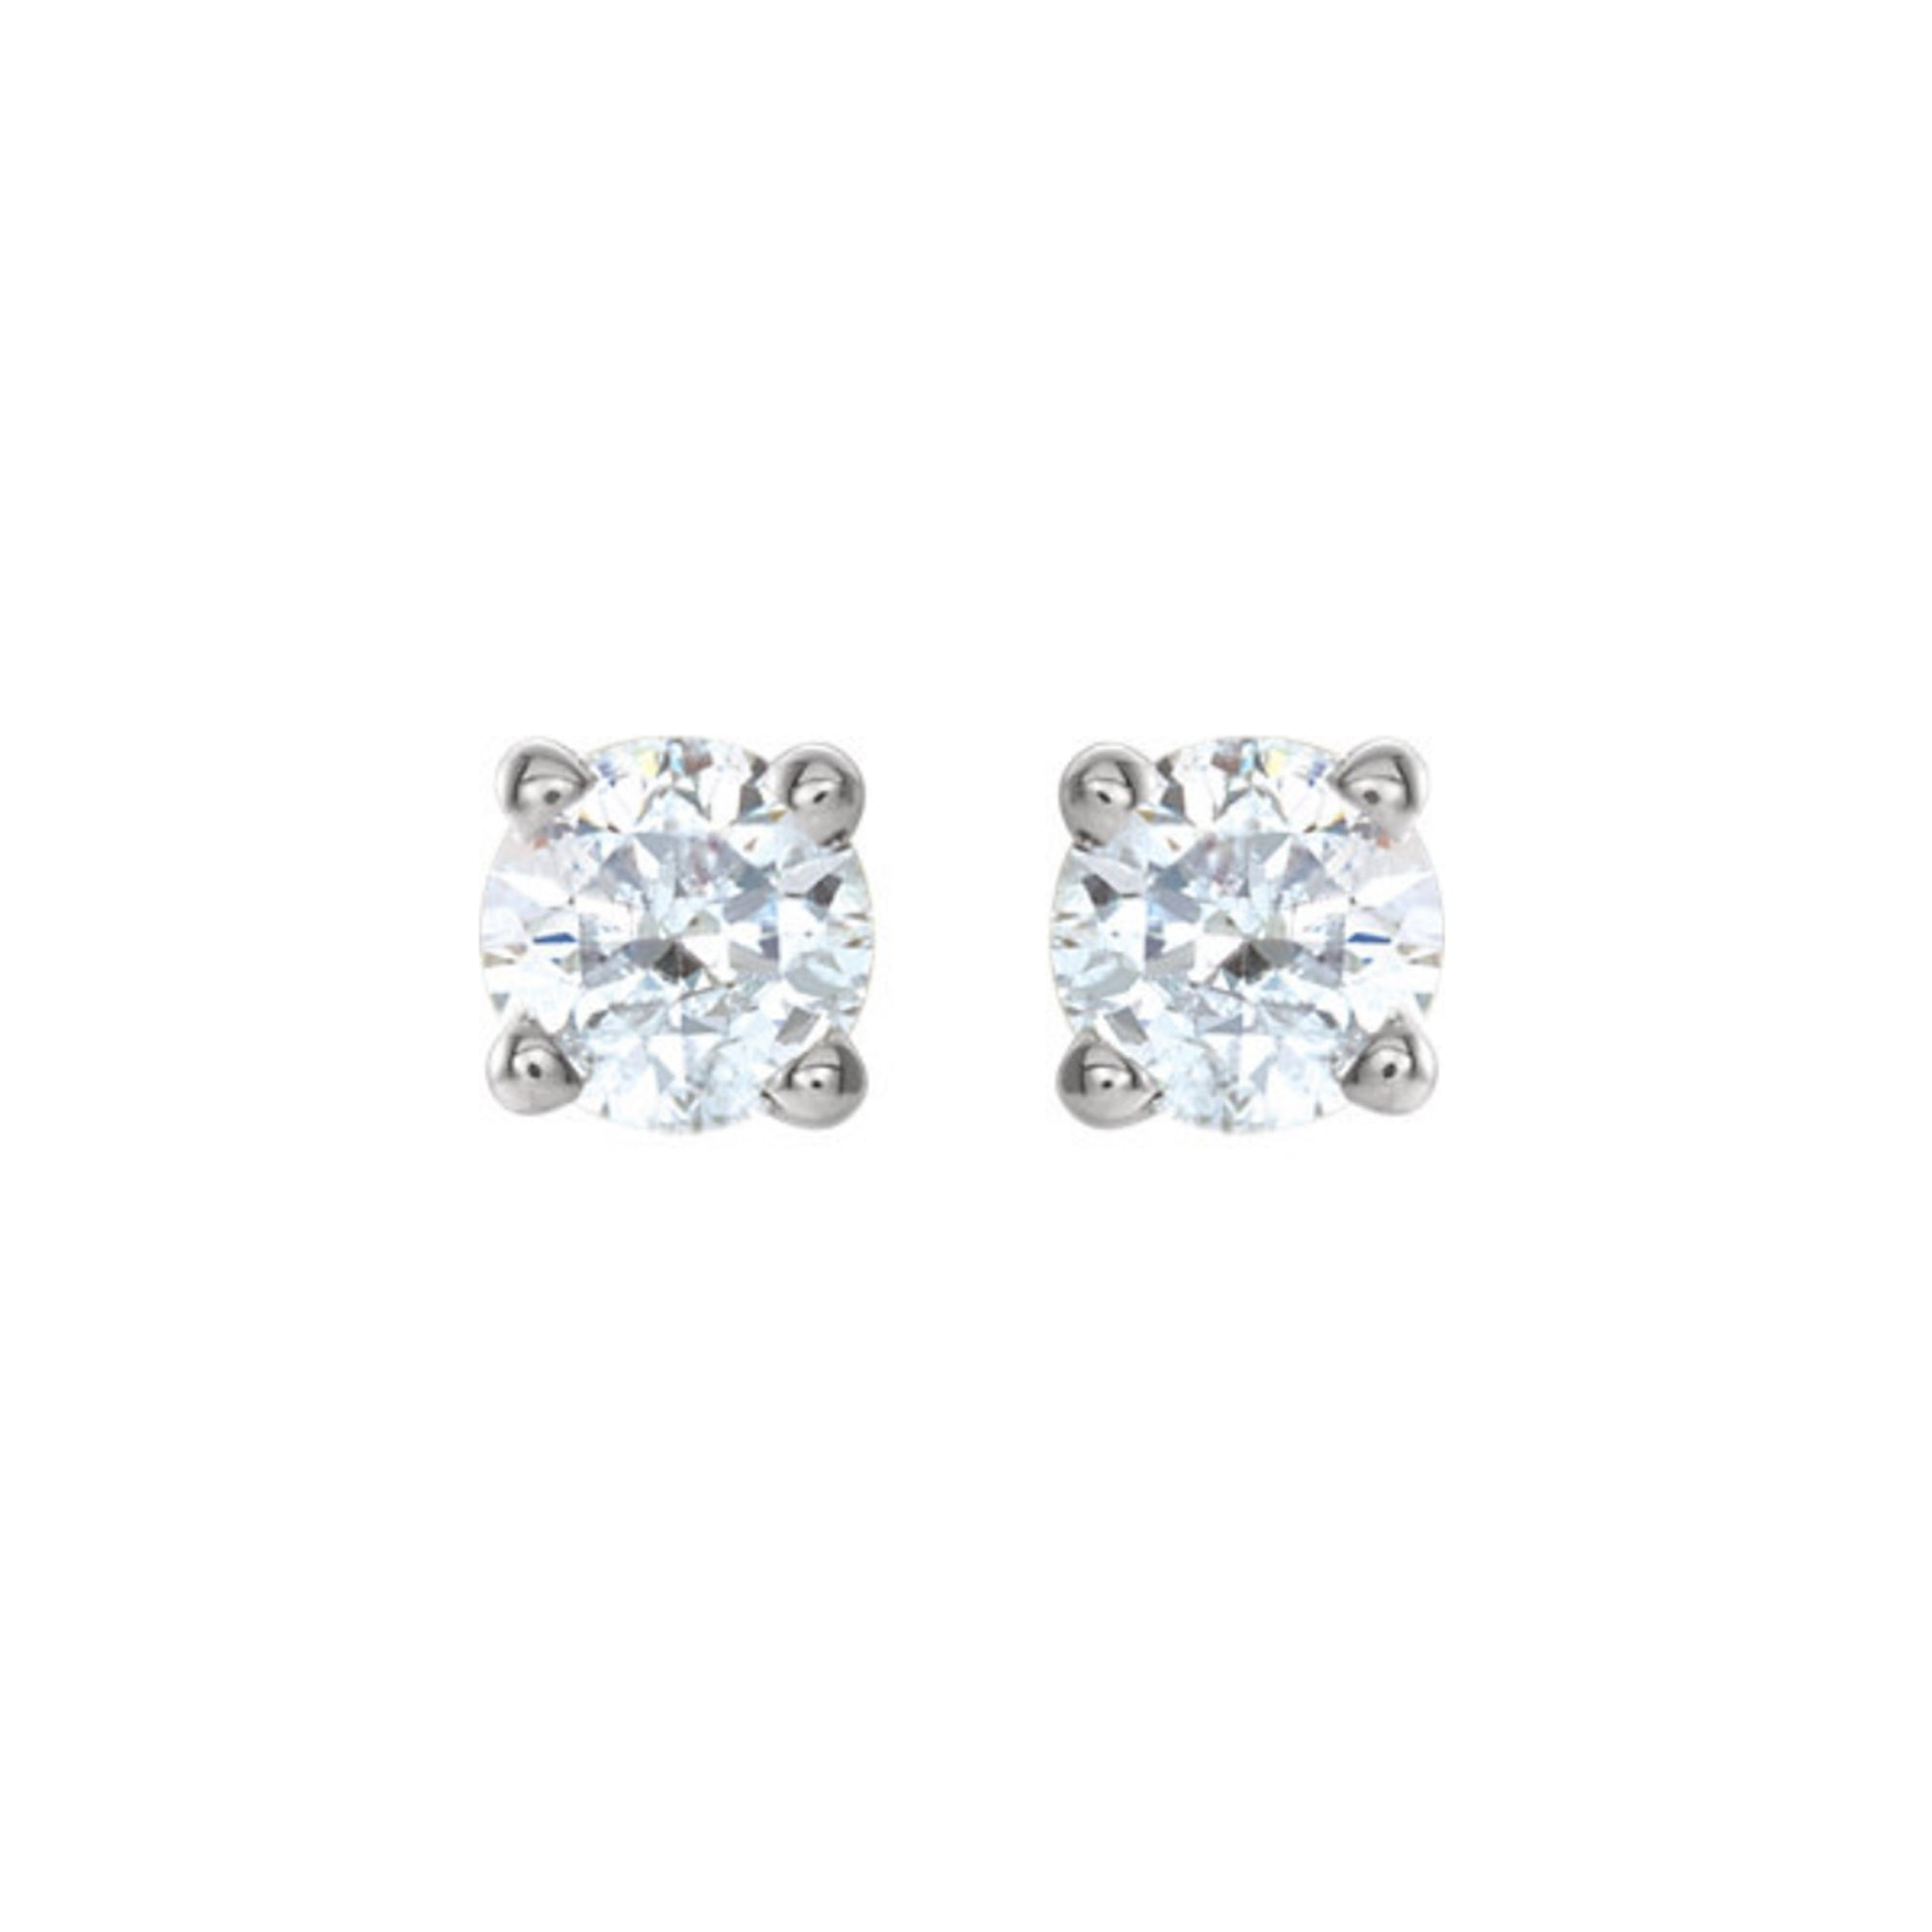 Diamond Stud Earrings, 0.75 Carat Total Weight in 14k White, Yellow or Rose Gold - Talisman Collection Fine Jewelers